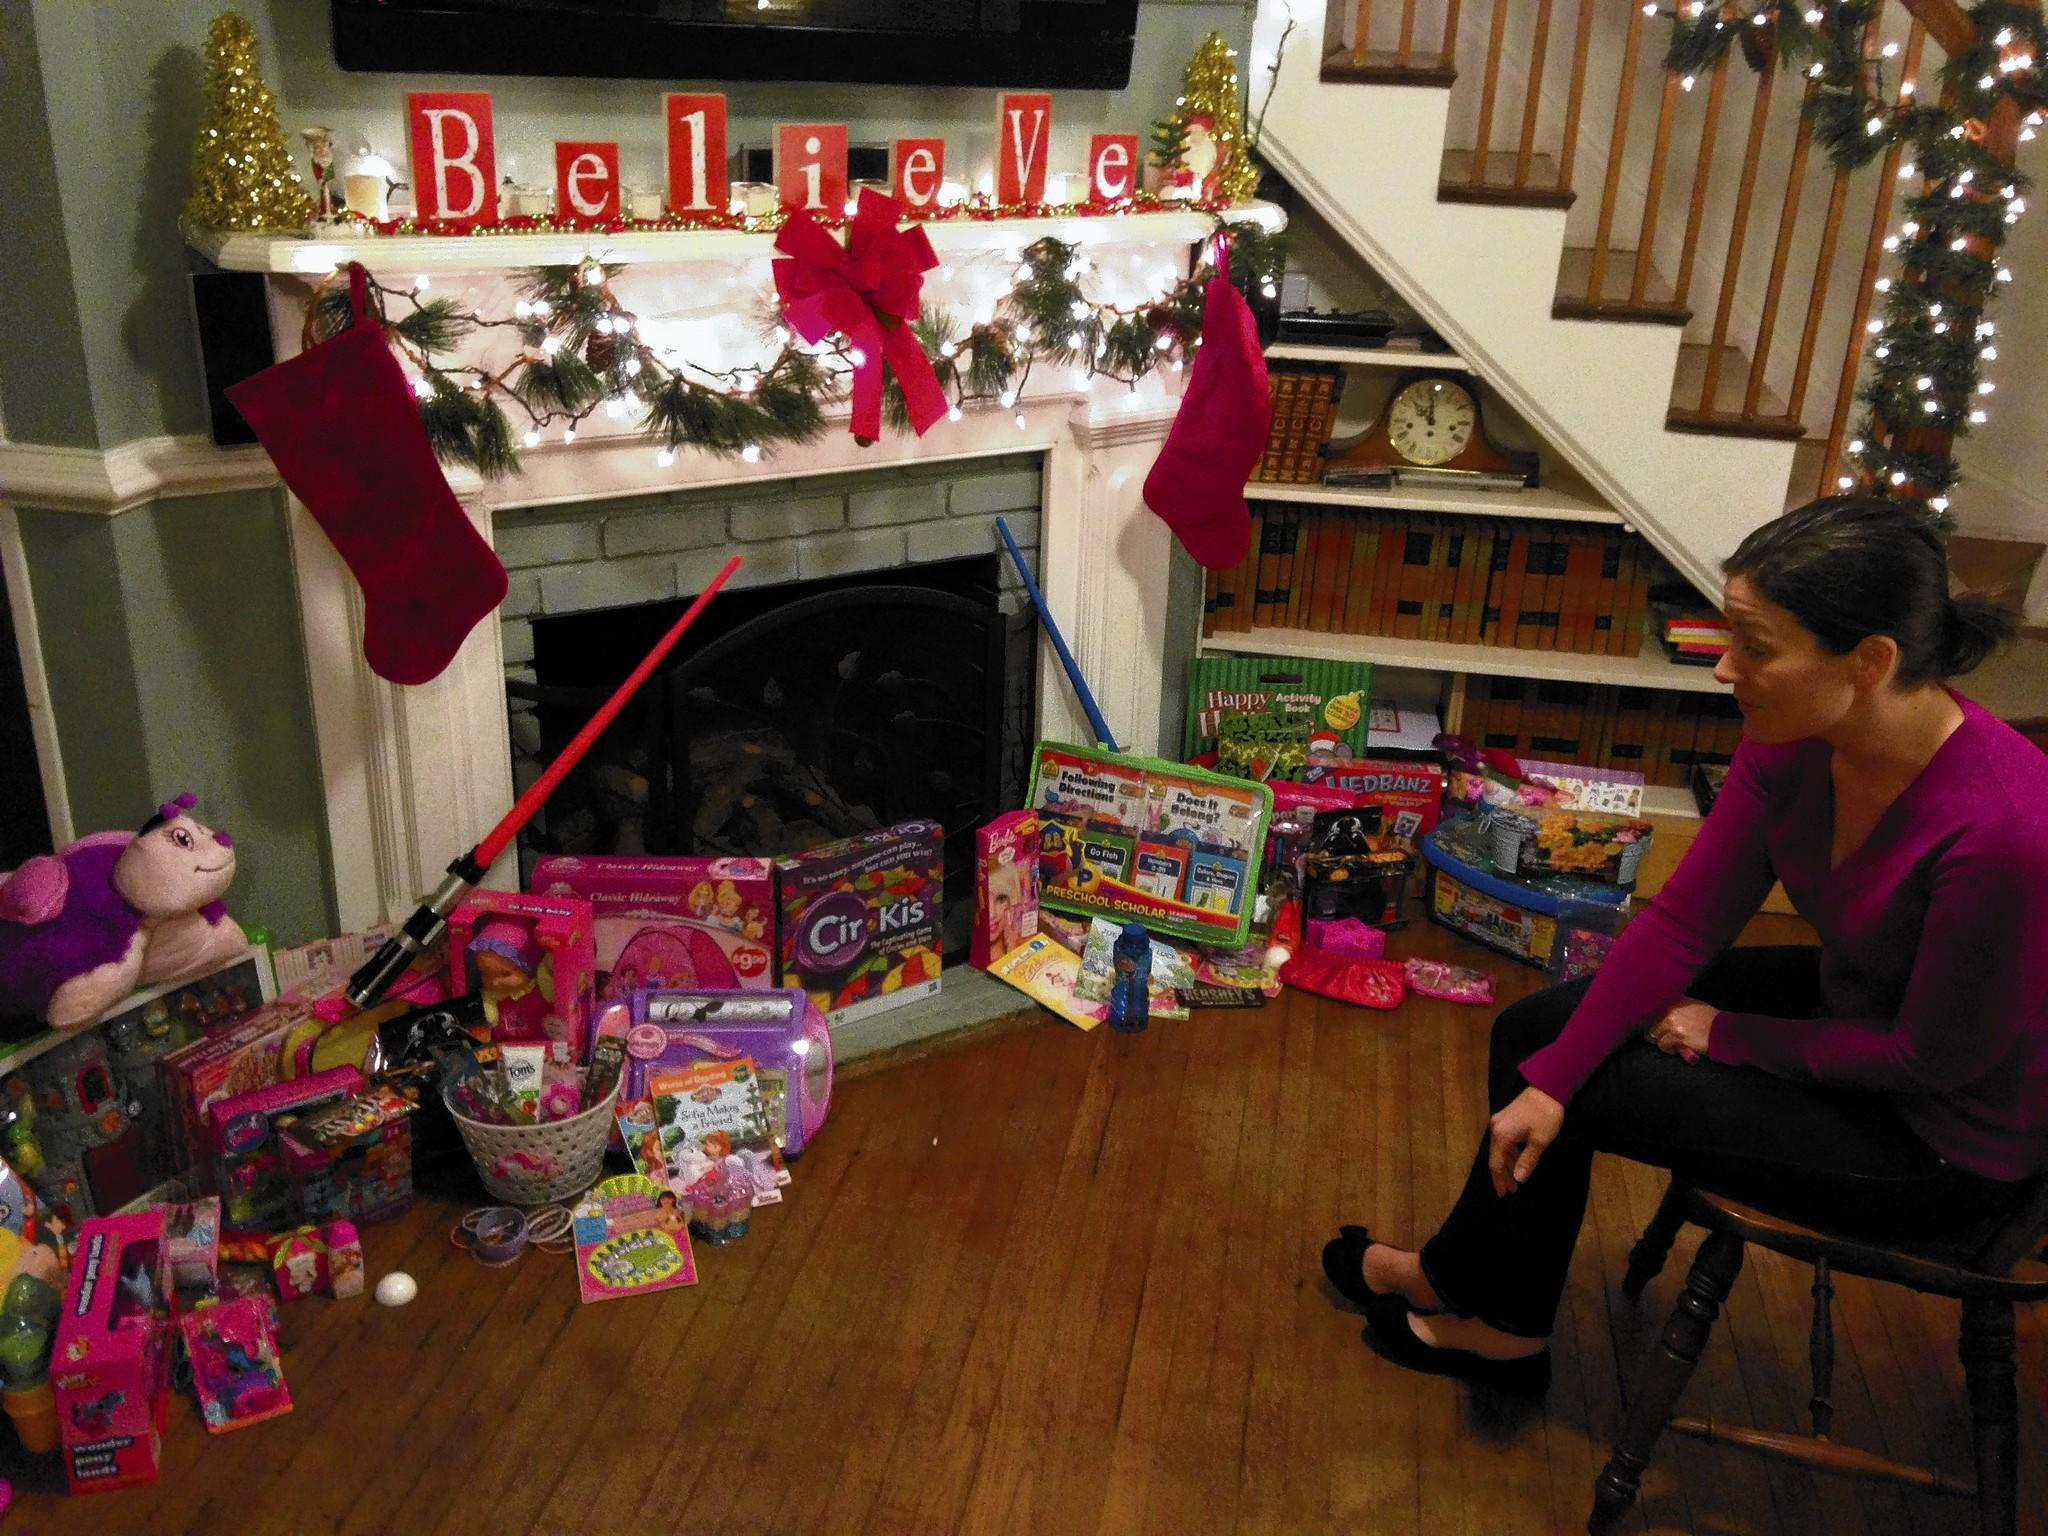 Alexis Chappell points to some of the gifts that showed up at her doorstep that her girls had actually asked for.